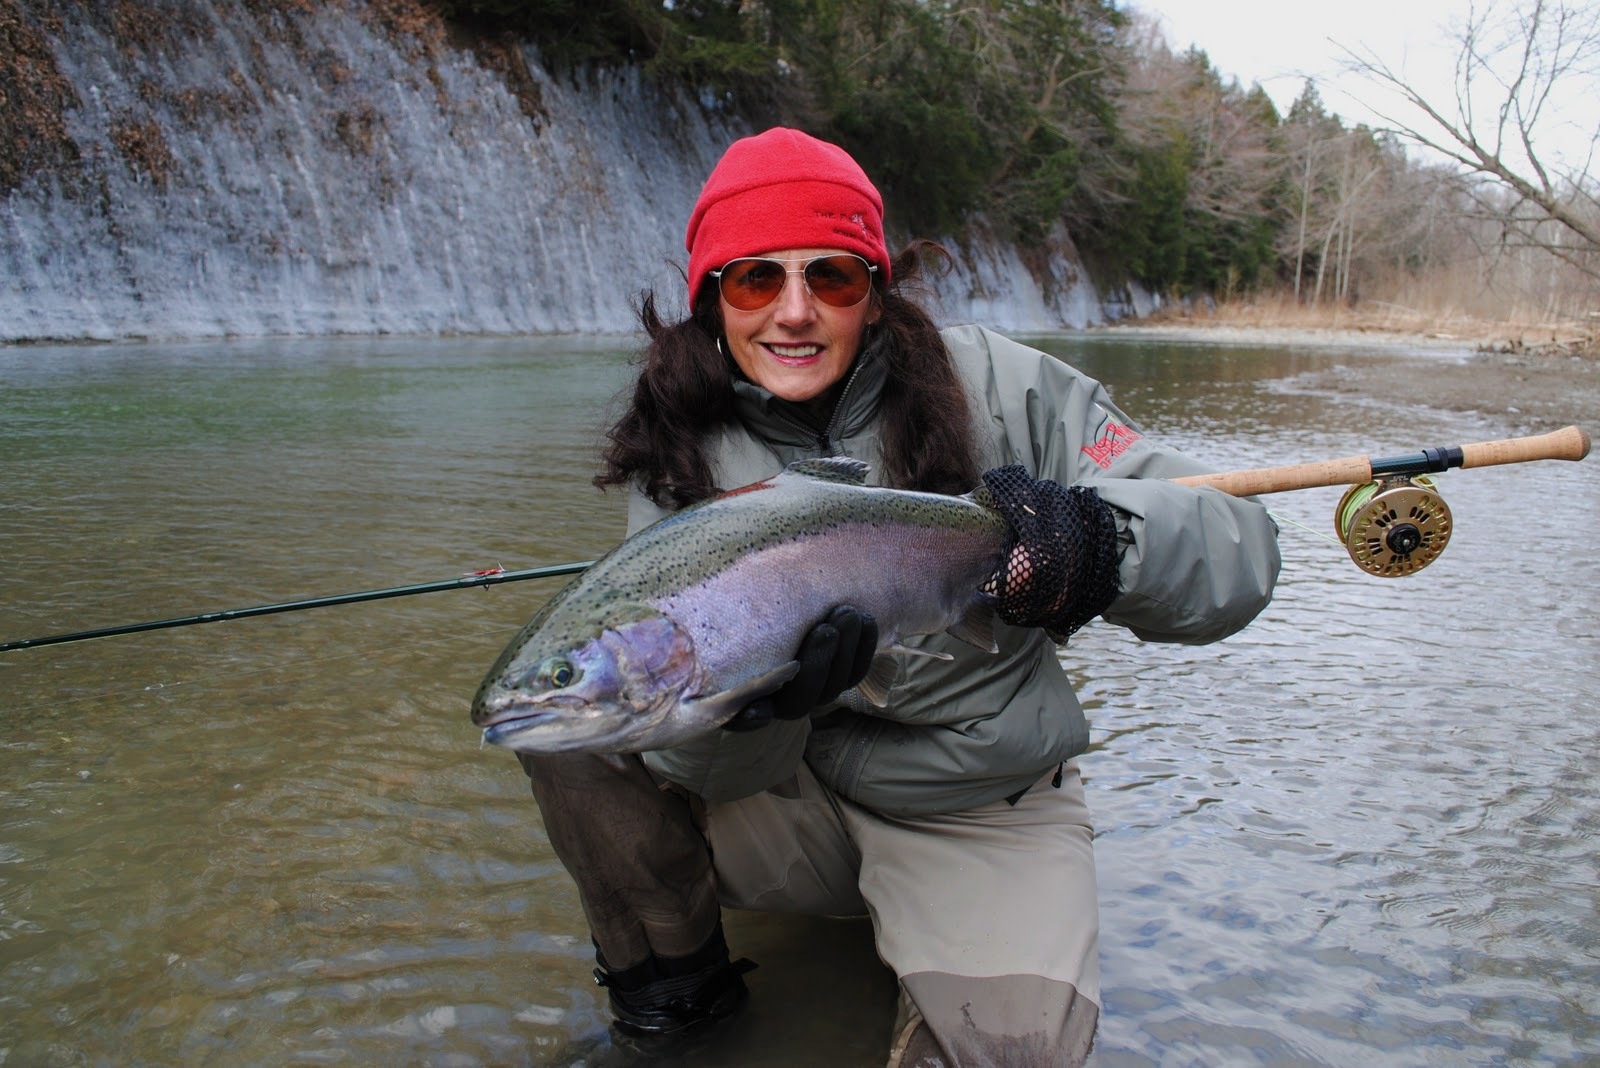 Steelhead alley outfitters lake erie fly fishing guide for Keystone lake fishing report